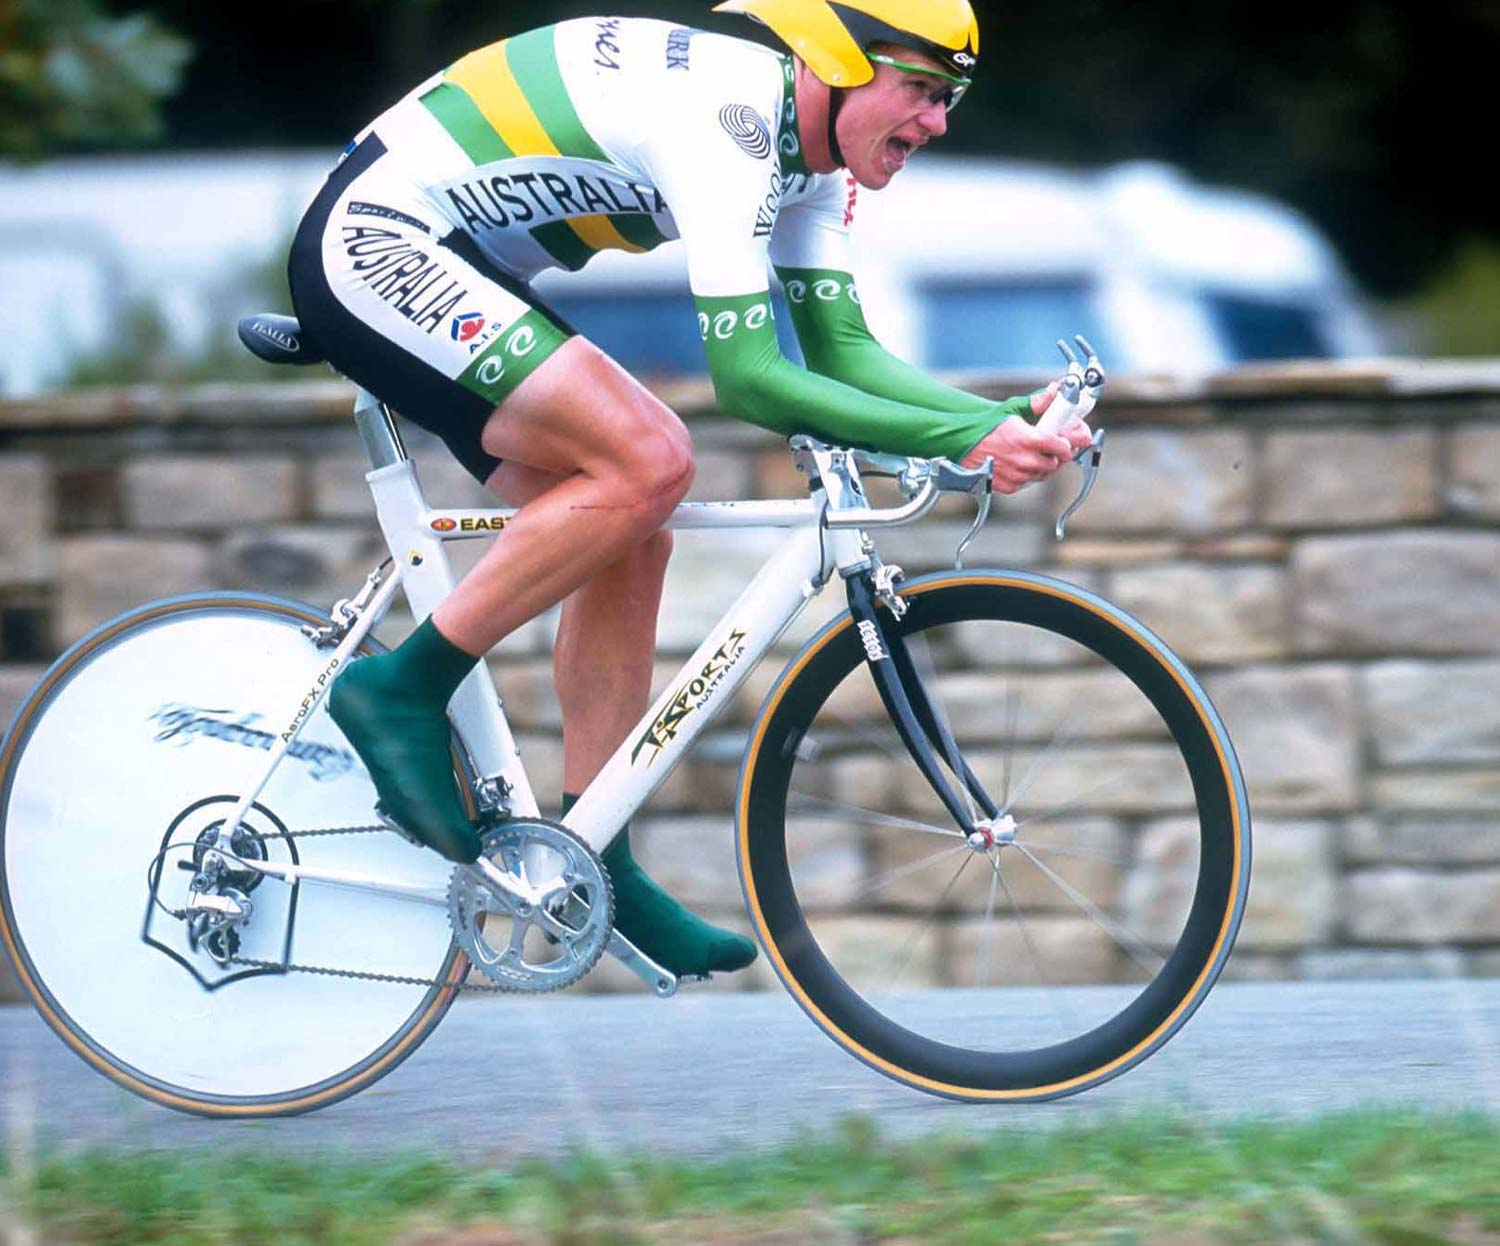 Racing to 3rd in the under-23 worlds in Plouay in 2000. Photo: Graham Watson